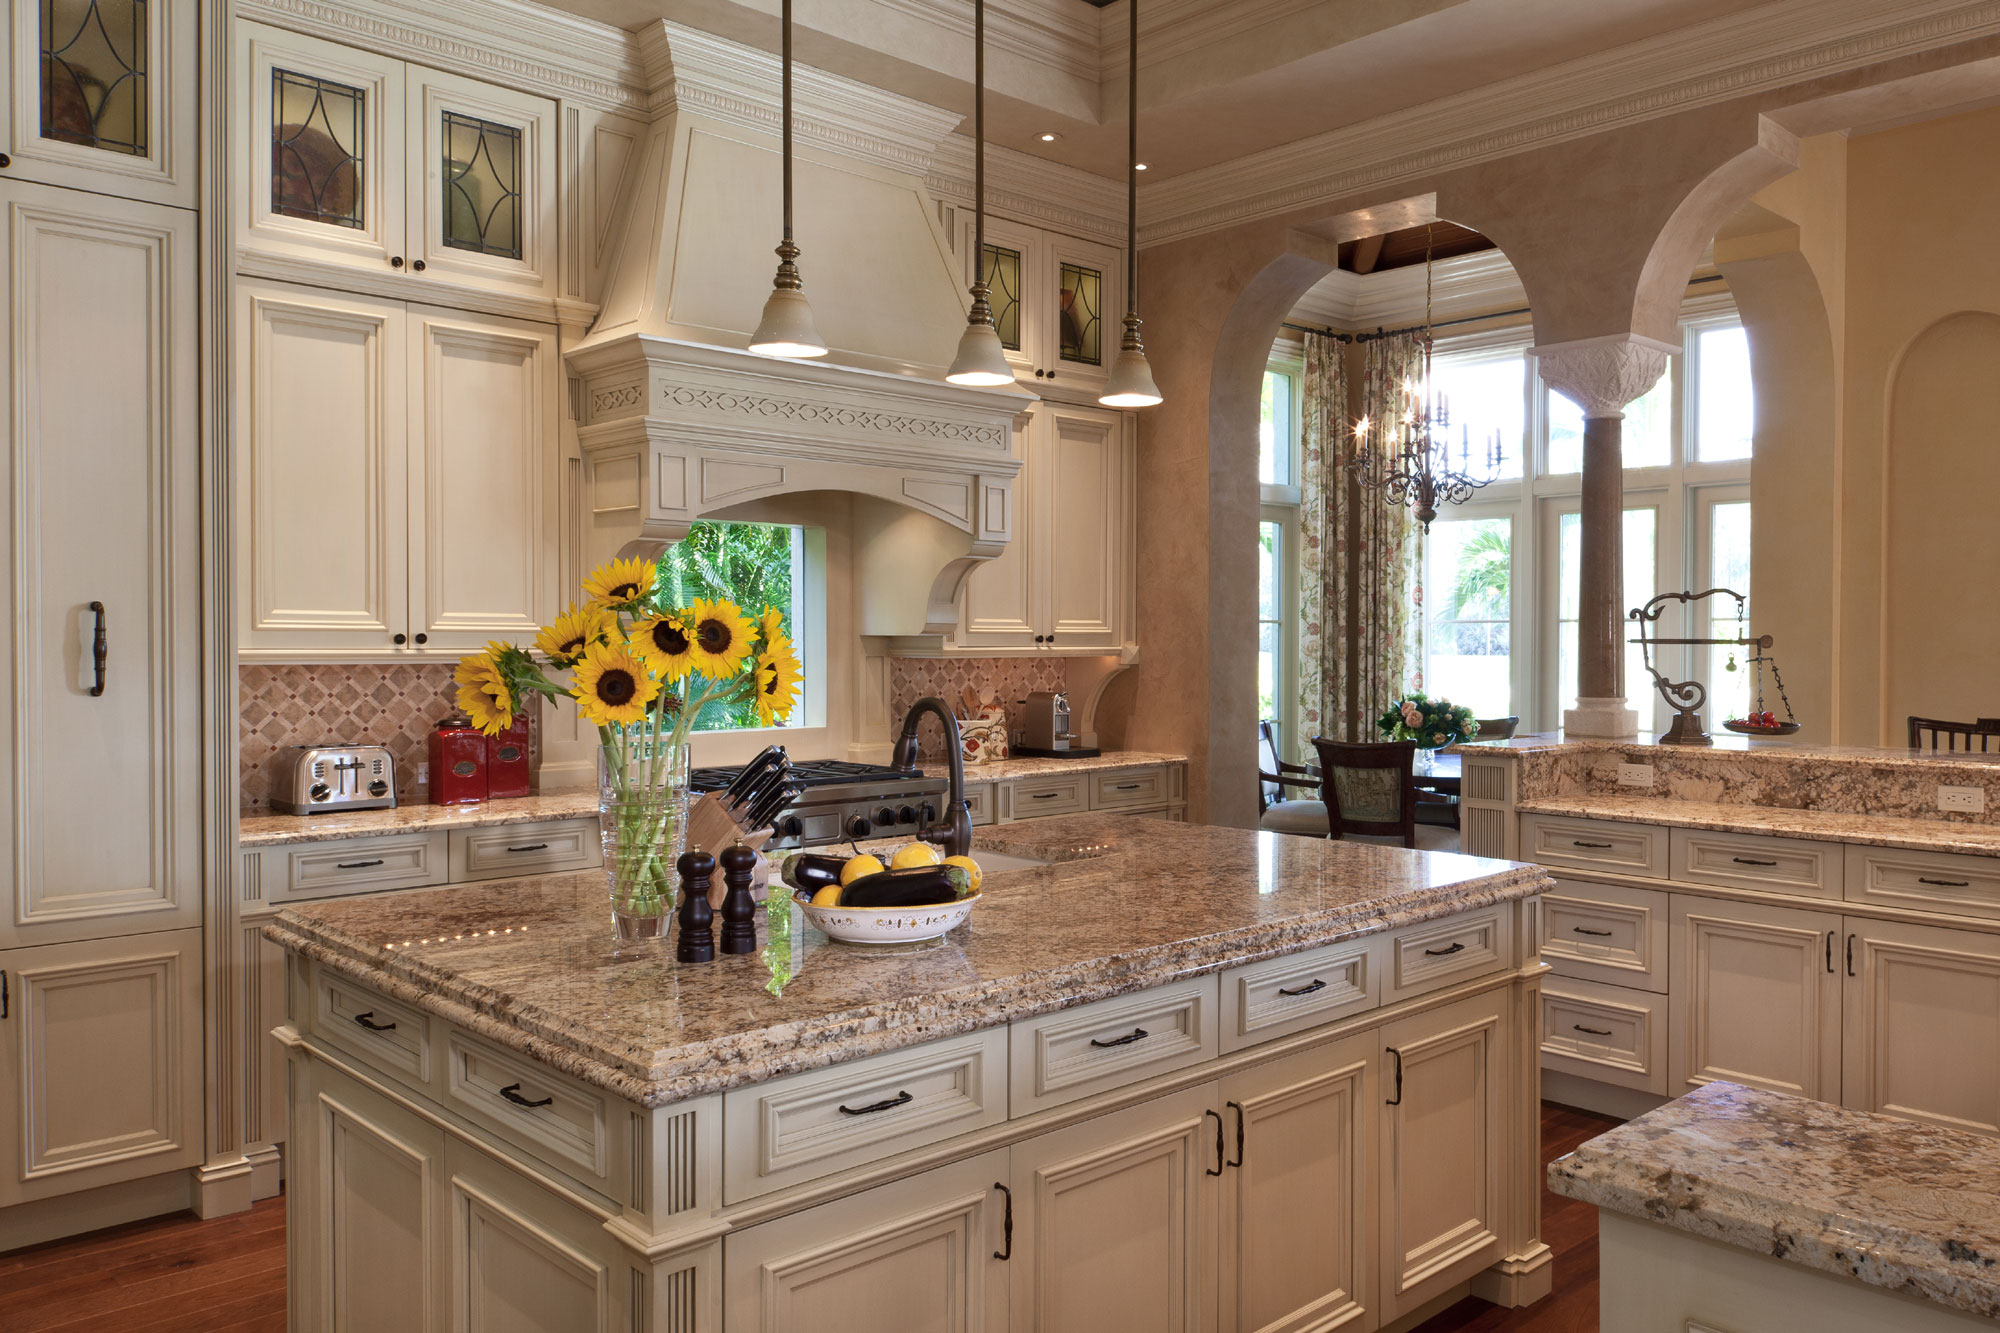 Faux Finish Gallery -O'Guin Decorative Finishes